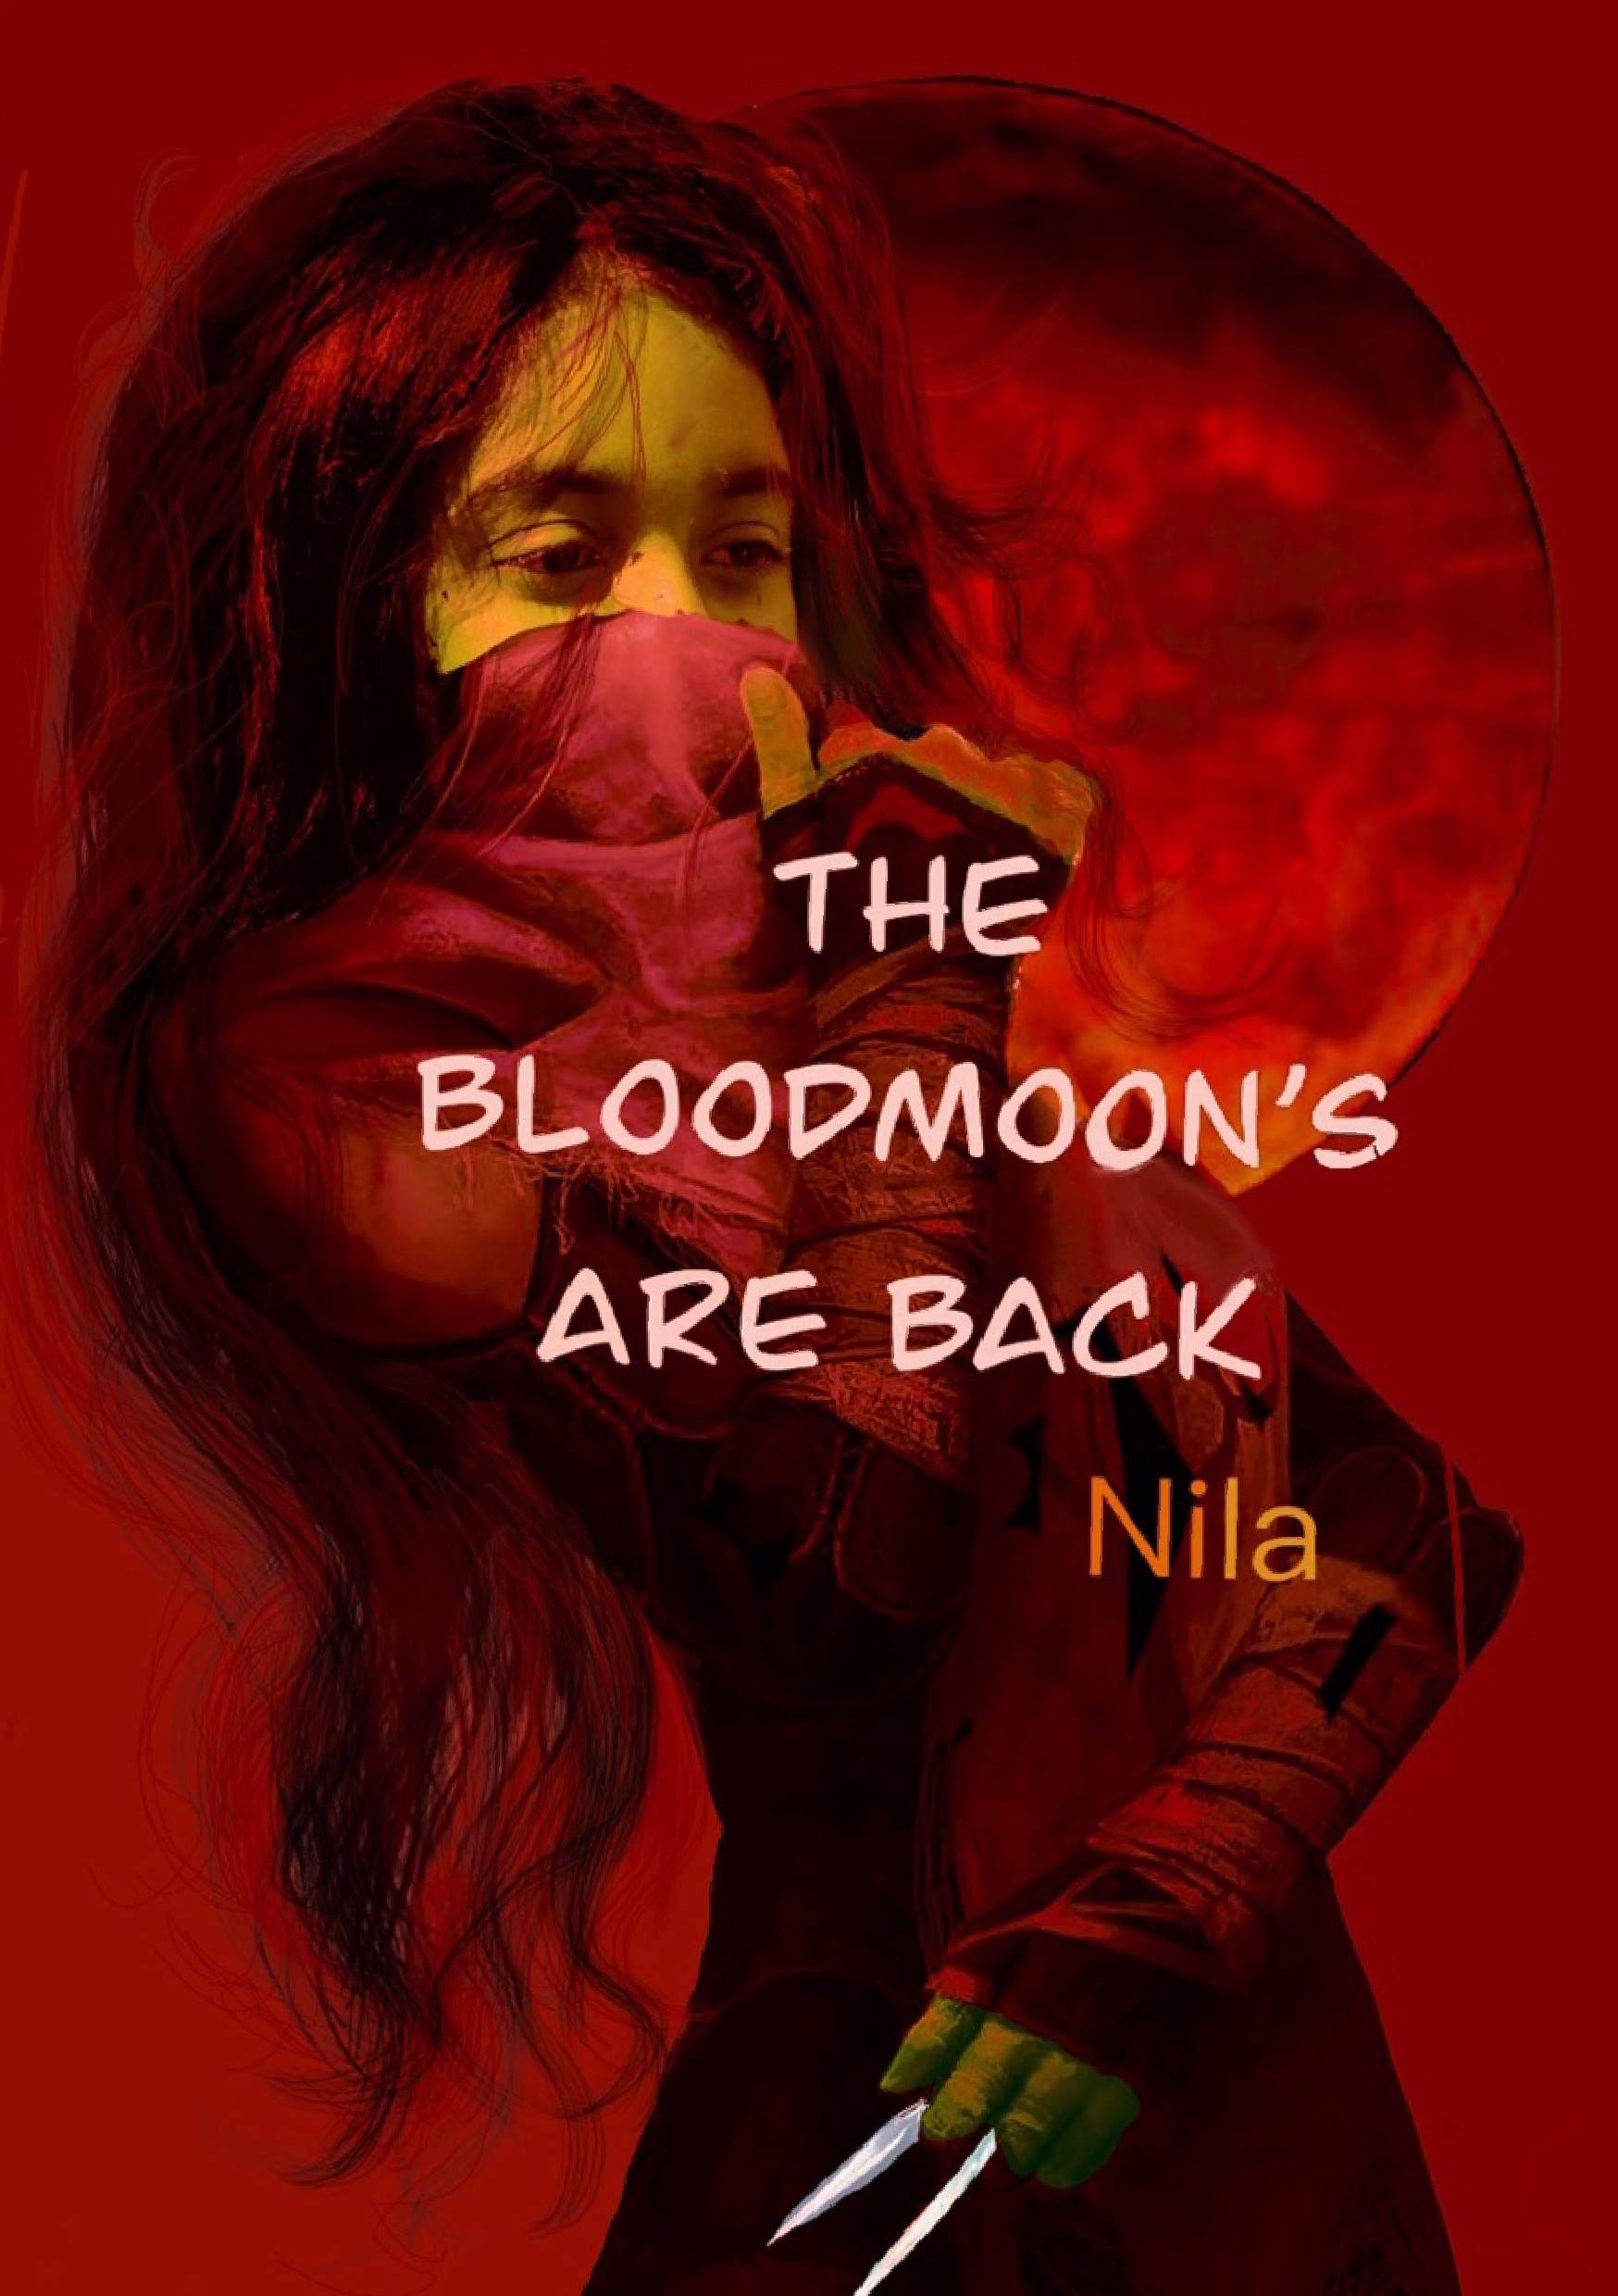 the-bloodmoons-are-back.jpg